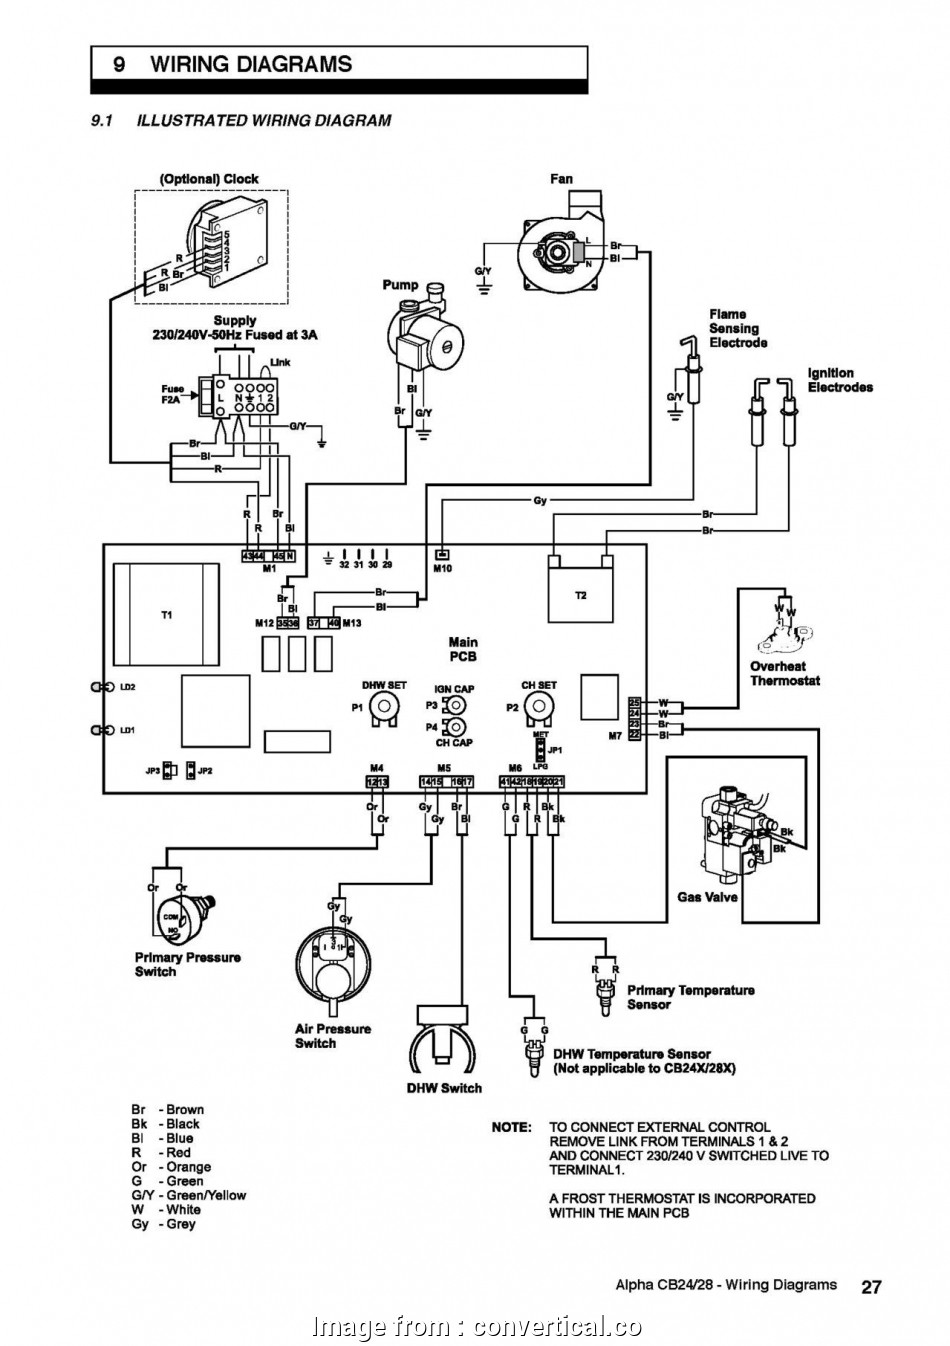 Salus Wireless Thermostat Wiring Diagram Cleaver Salus